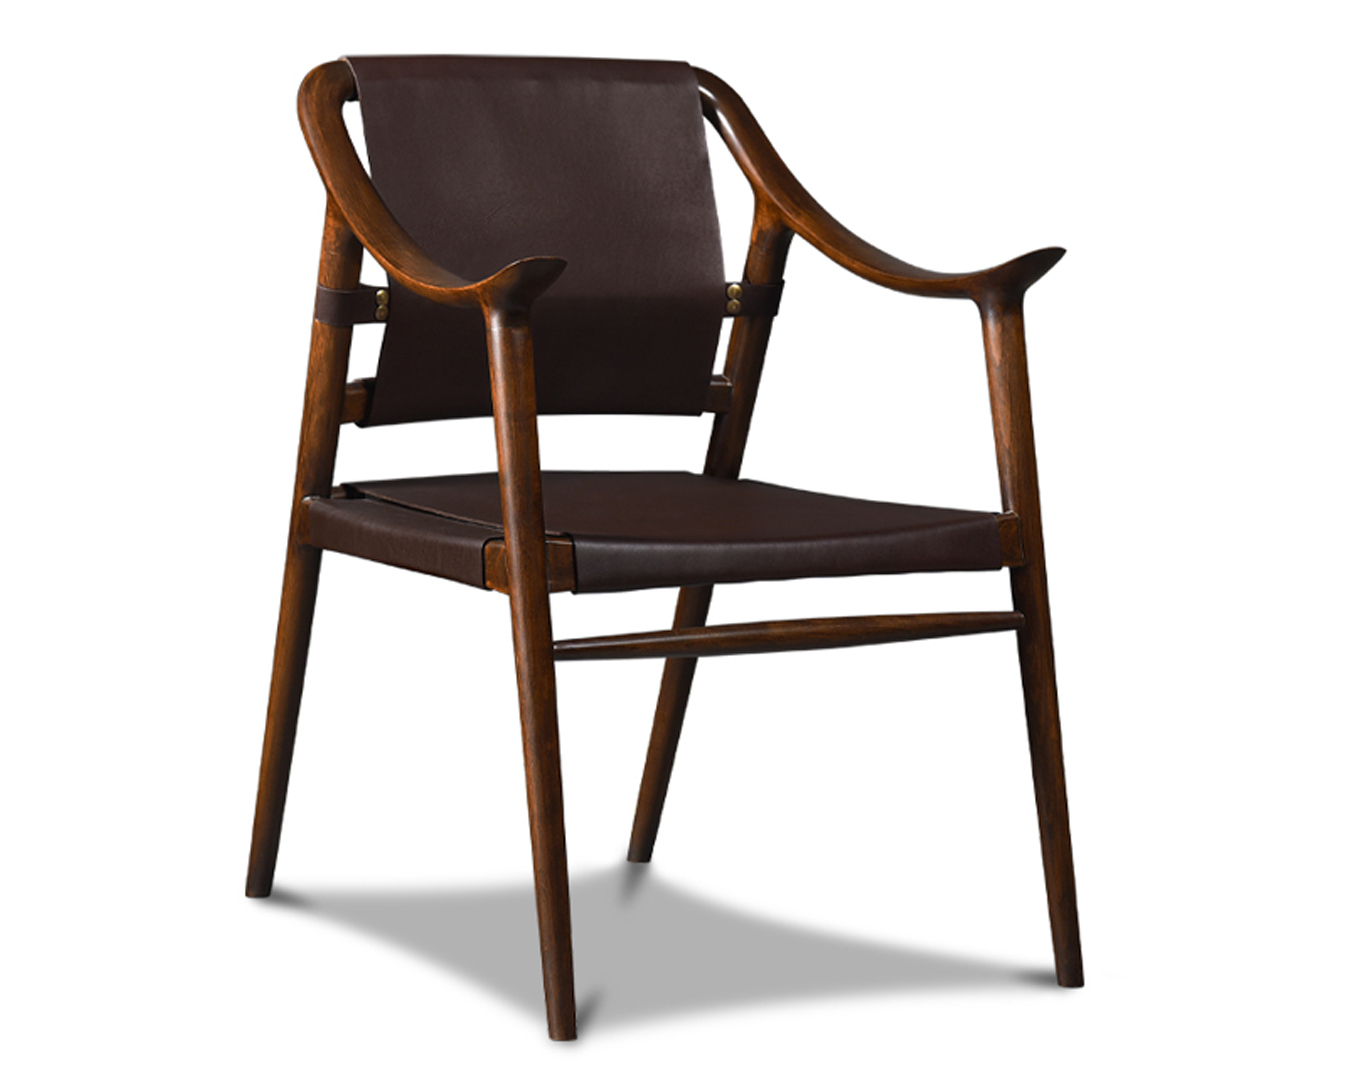 MONTHOLIER CHAIR